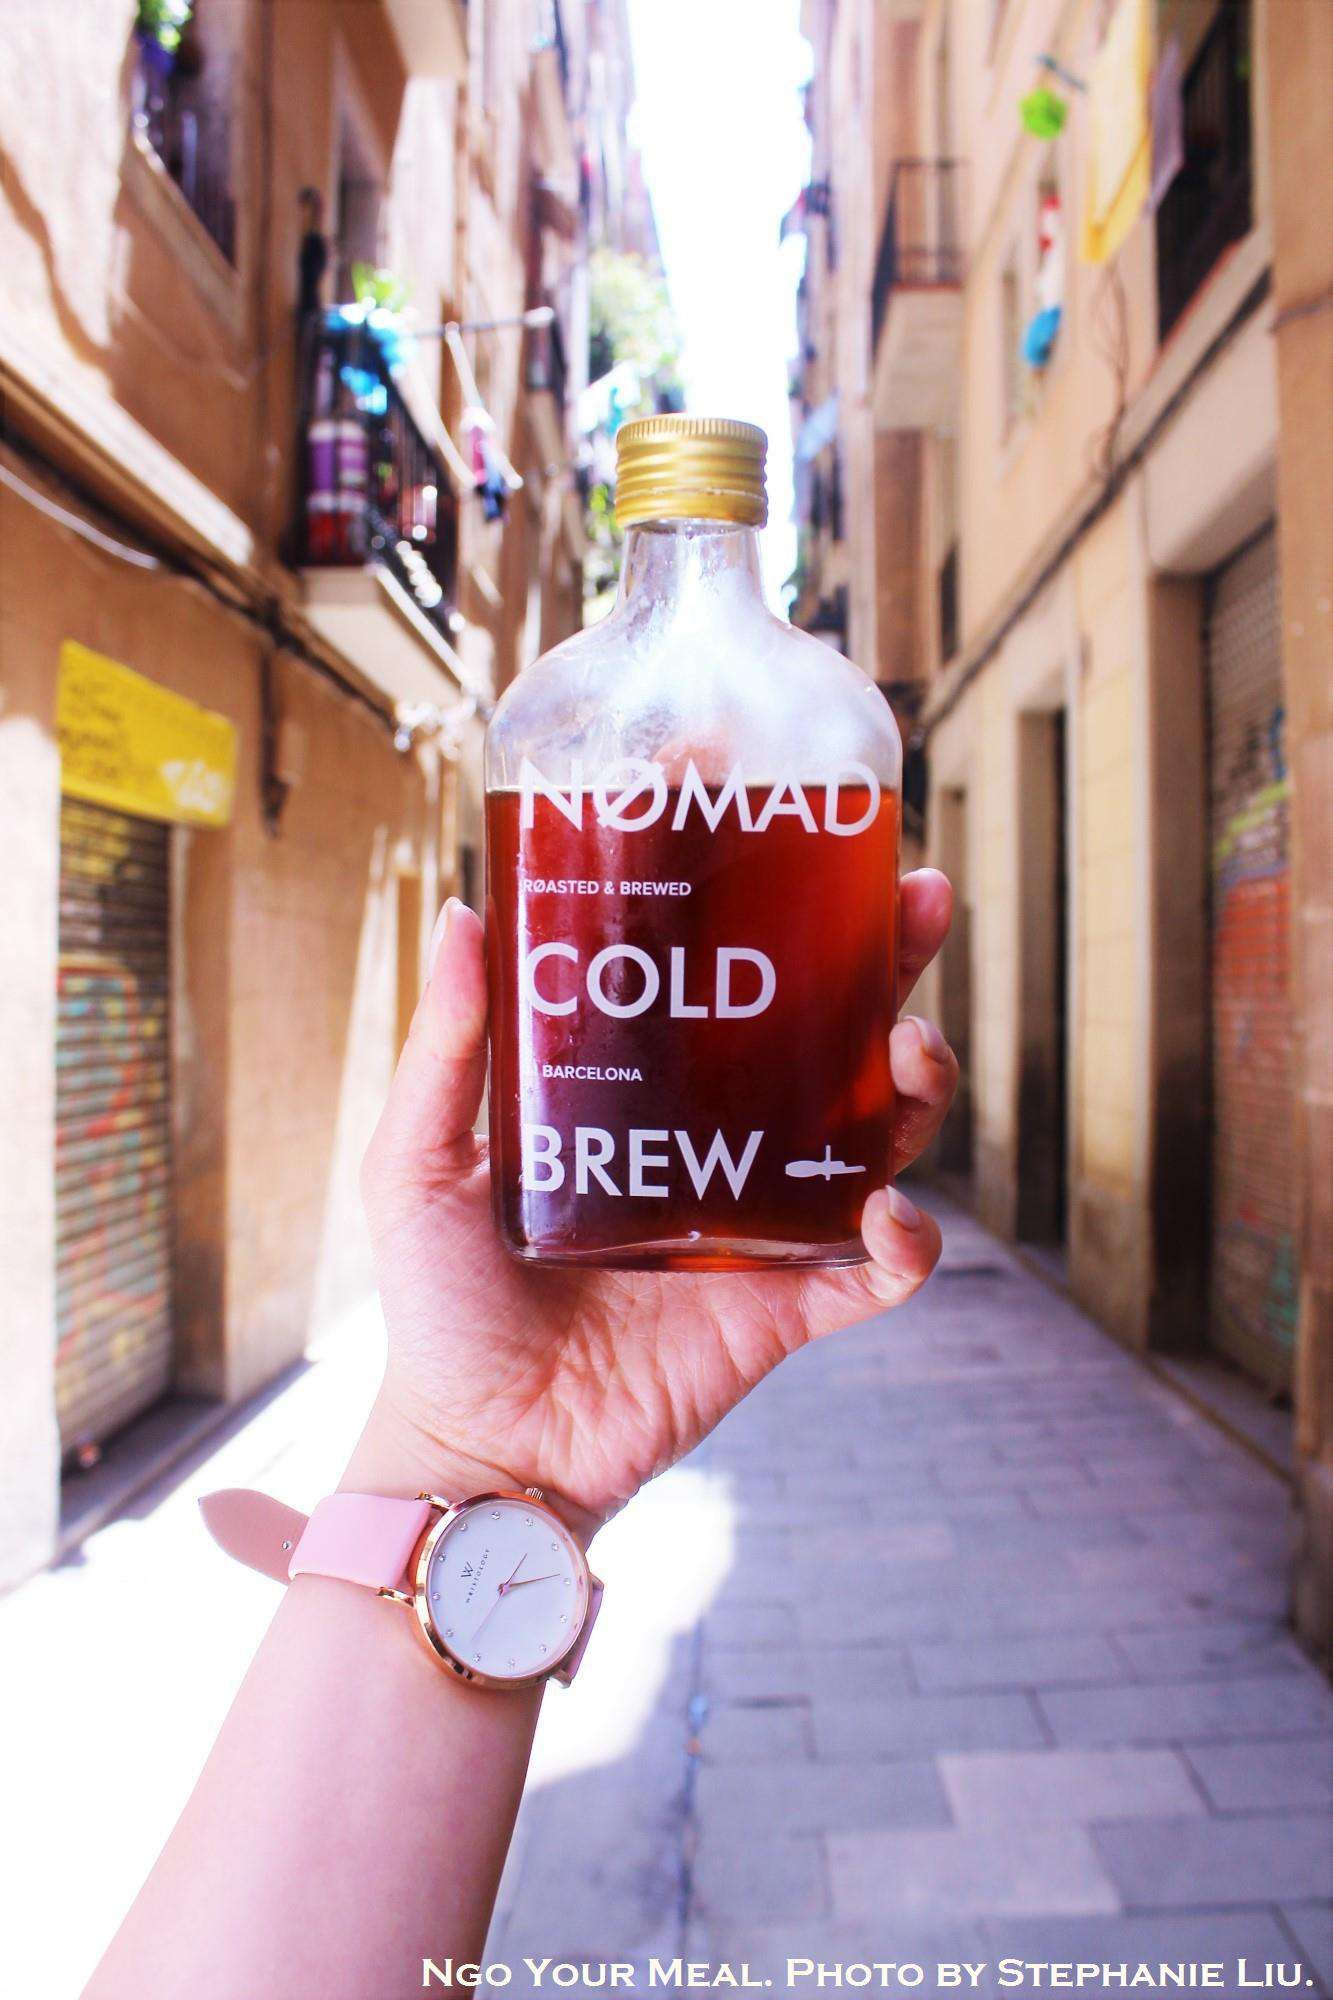 Nomad Cold Brew At Nomad Coffee In Barcelona Food Gallery Cold Brew Brewing